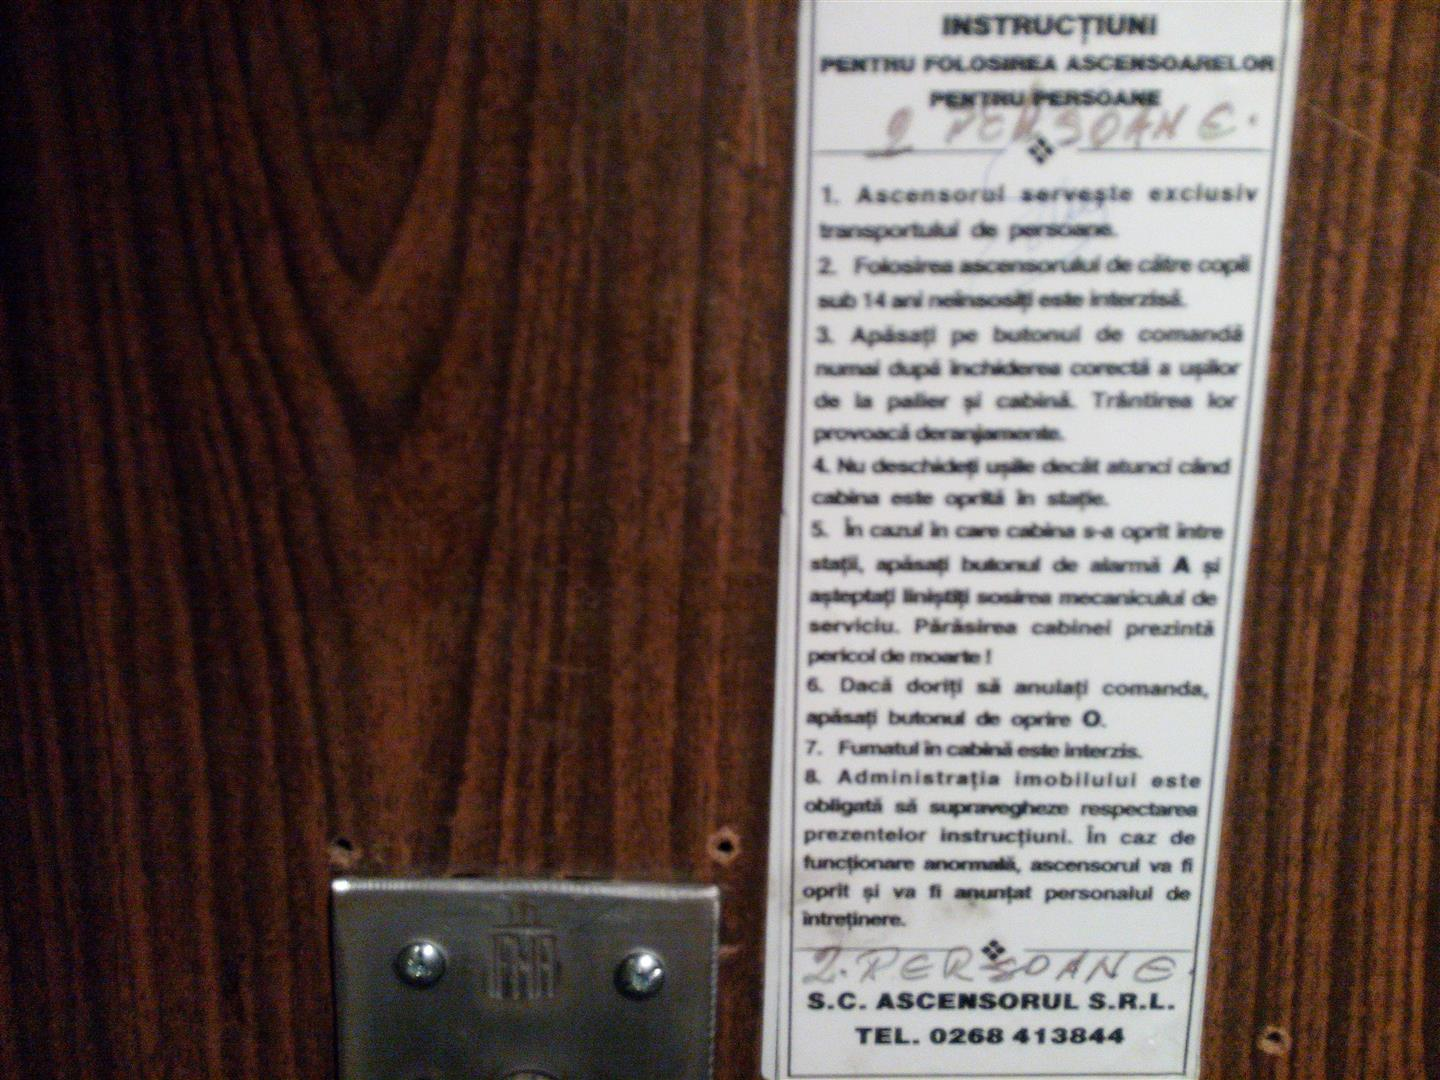 lift-expirat-defect-faget-brasov-2015-apr (3)